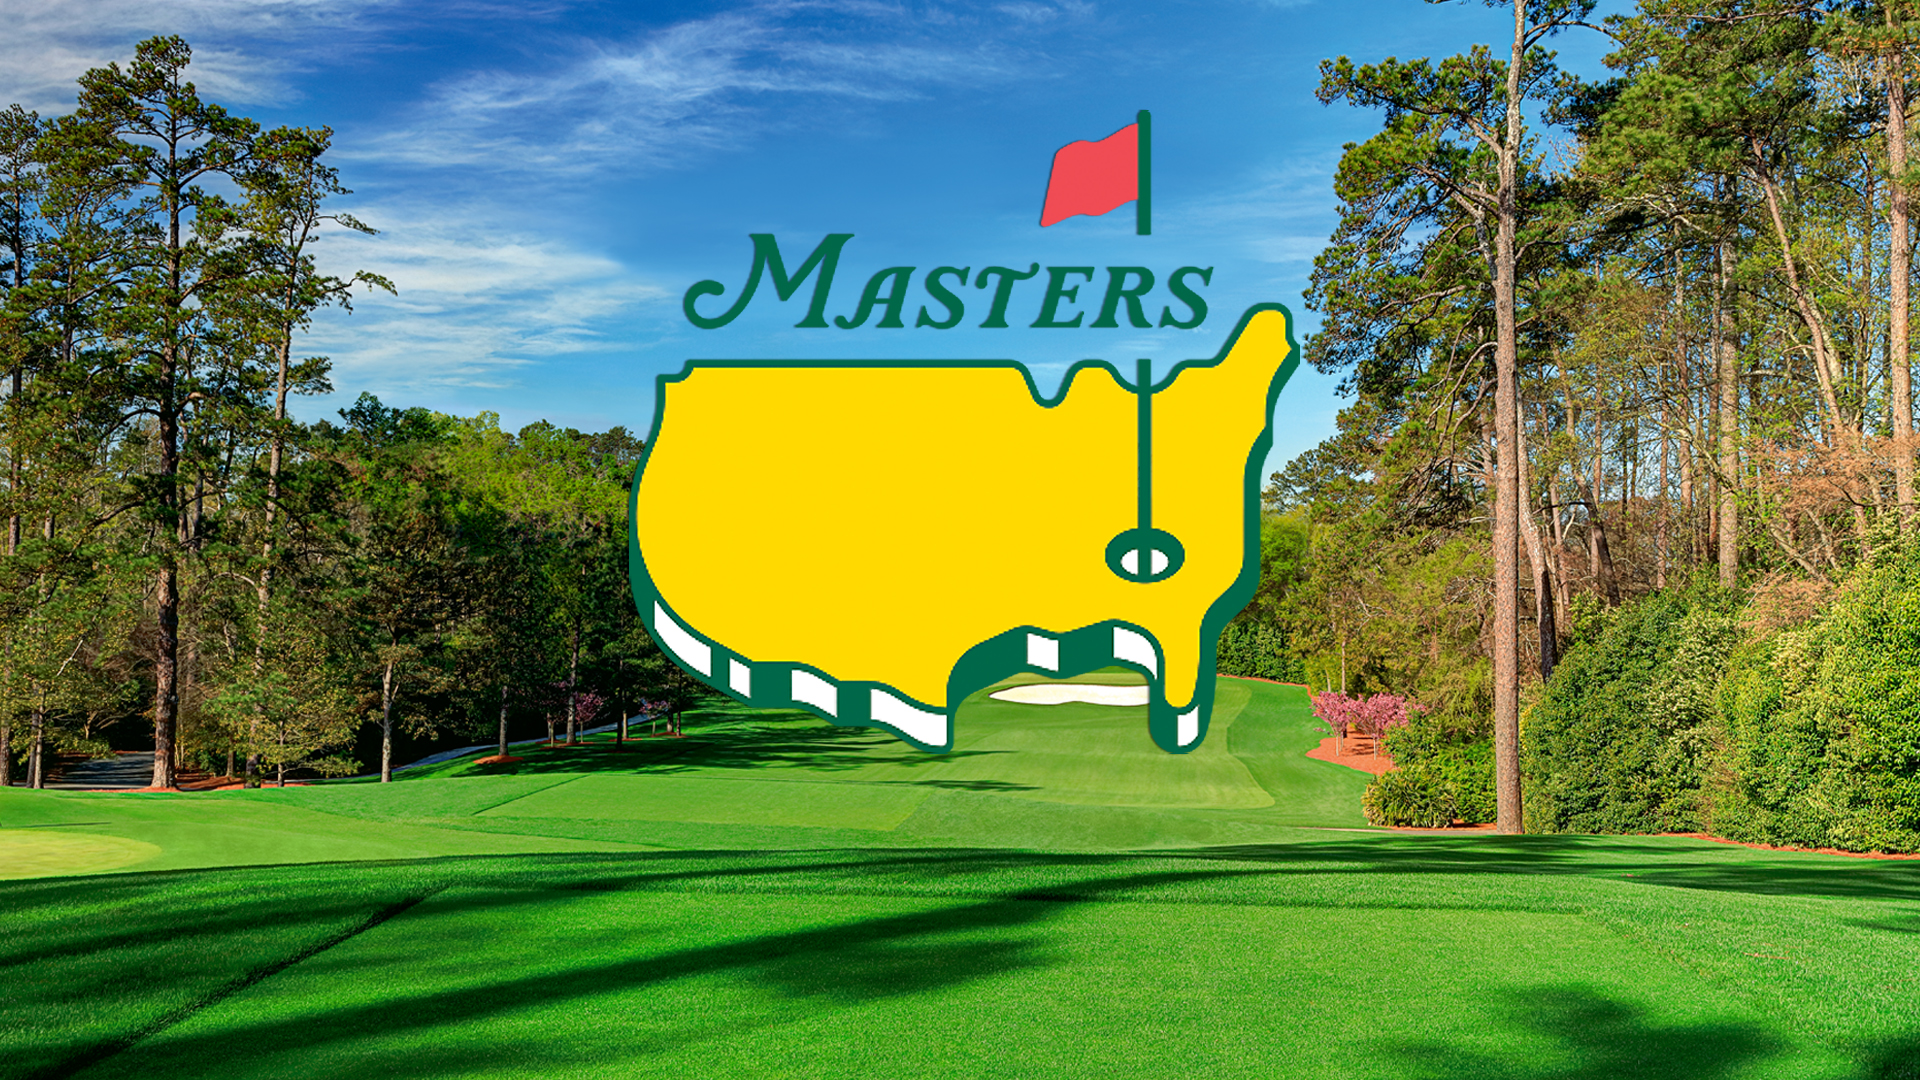 Updated Covid Protocols For Masters 2021 Announced Wttv Cbs4indy